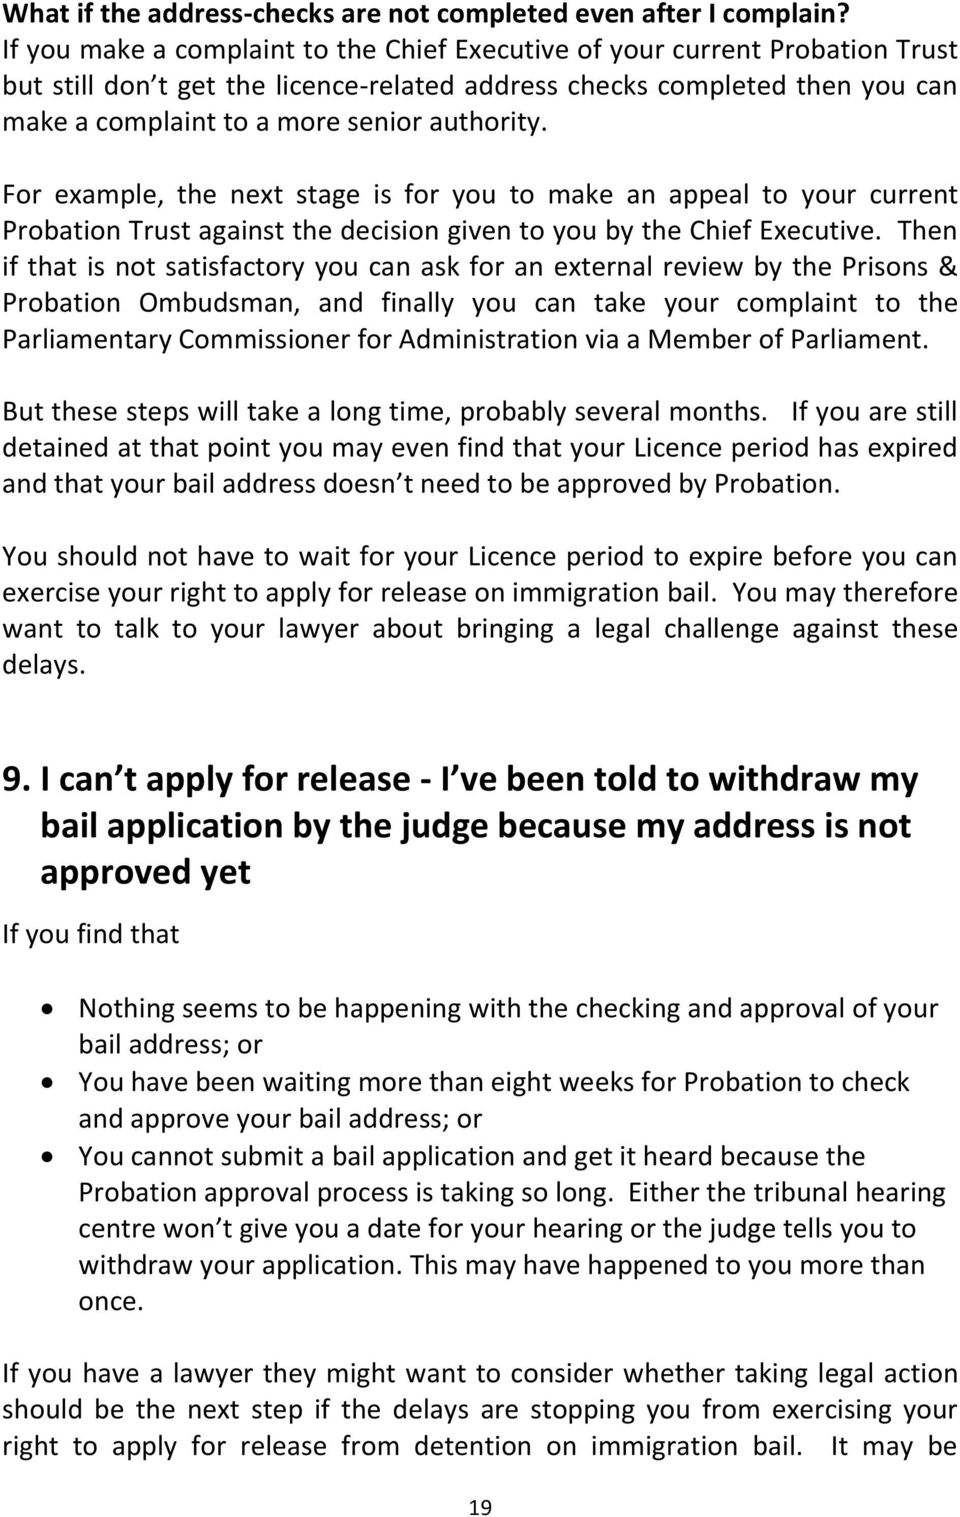 authority. For example, the next stage is for you to make an appeal to your current Probation Trust against the decision given to you by the Chief Executive.